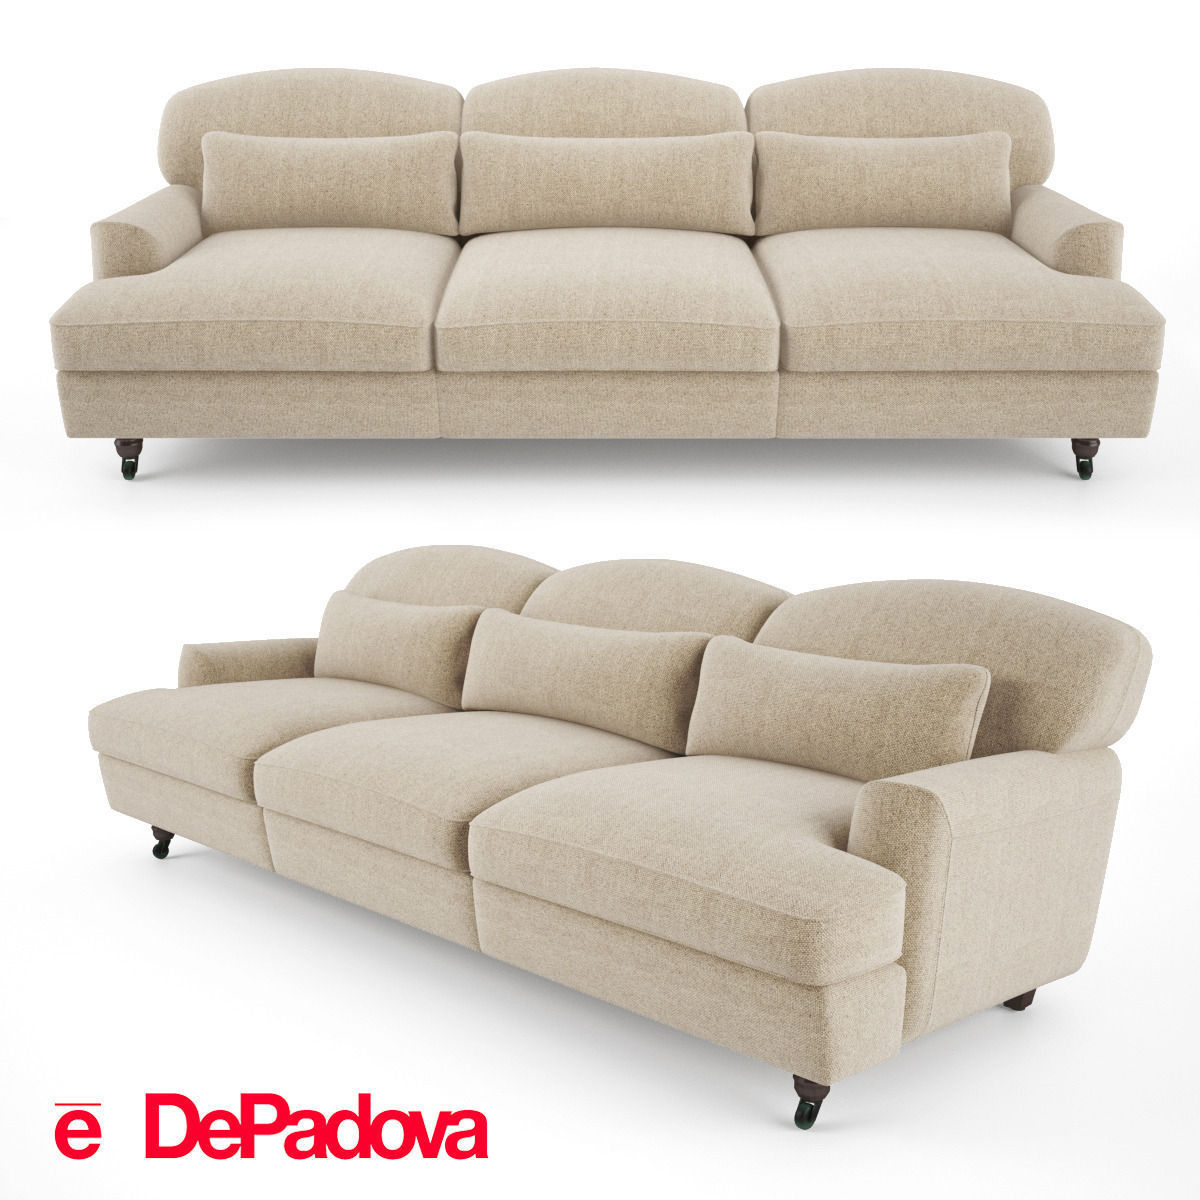 De Padova - Raffles Sofa - three-seater sofa 3D model MAX OBJ FBX